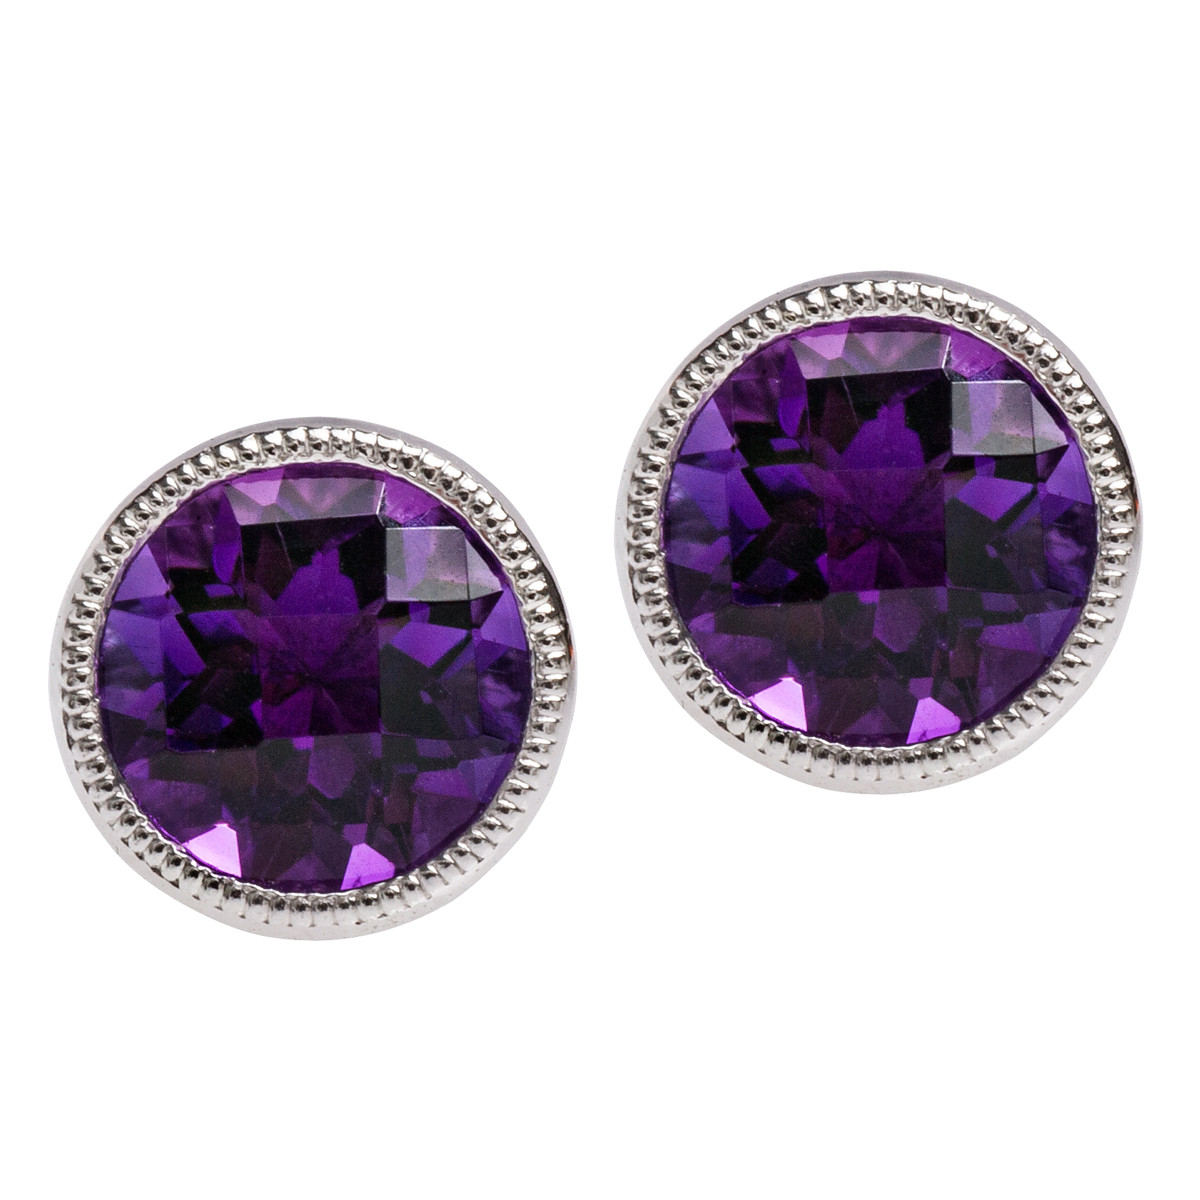 New 1.36 CTW Amethyst Stud Earrings